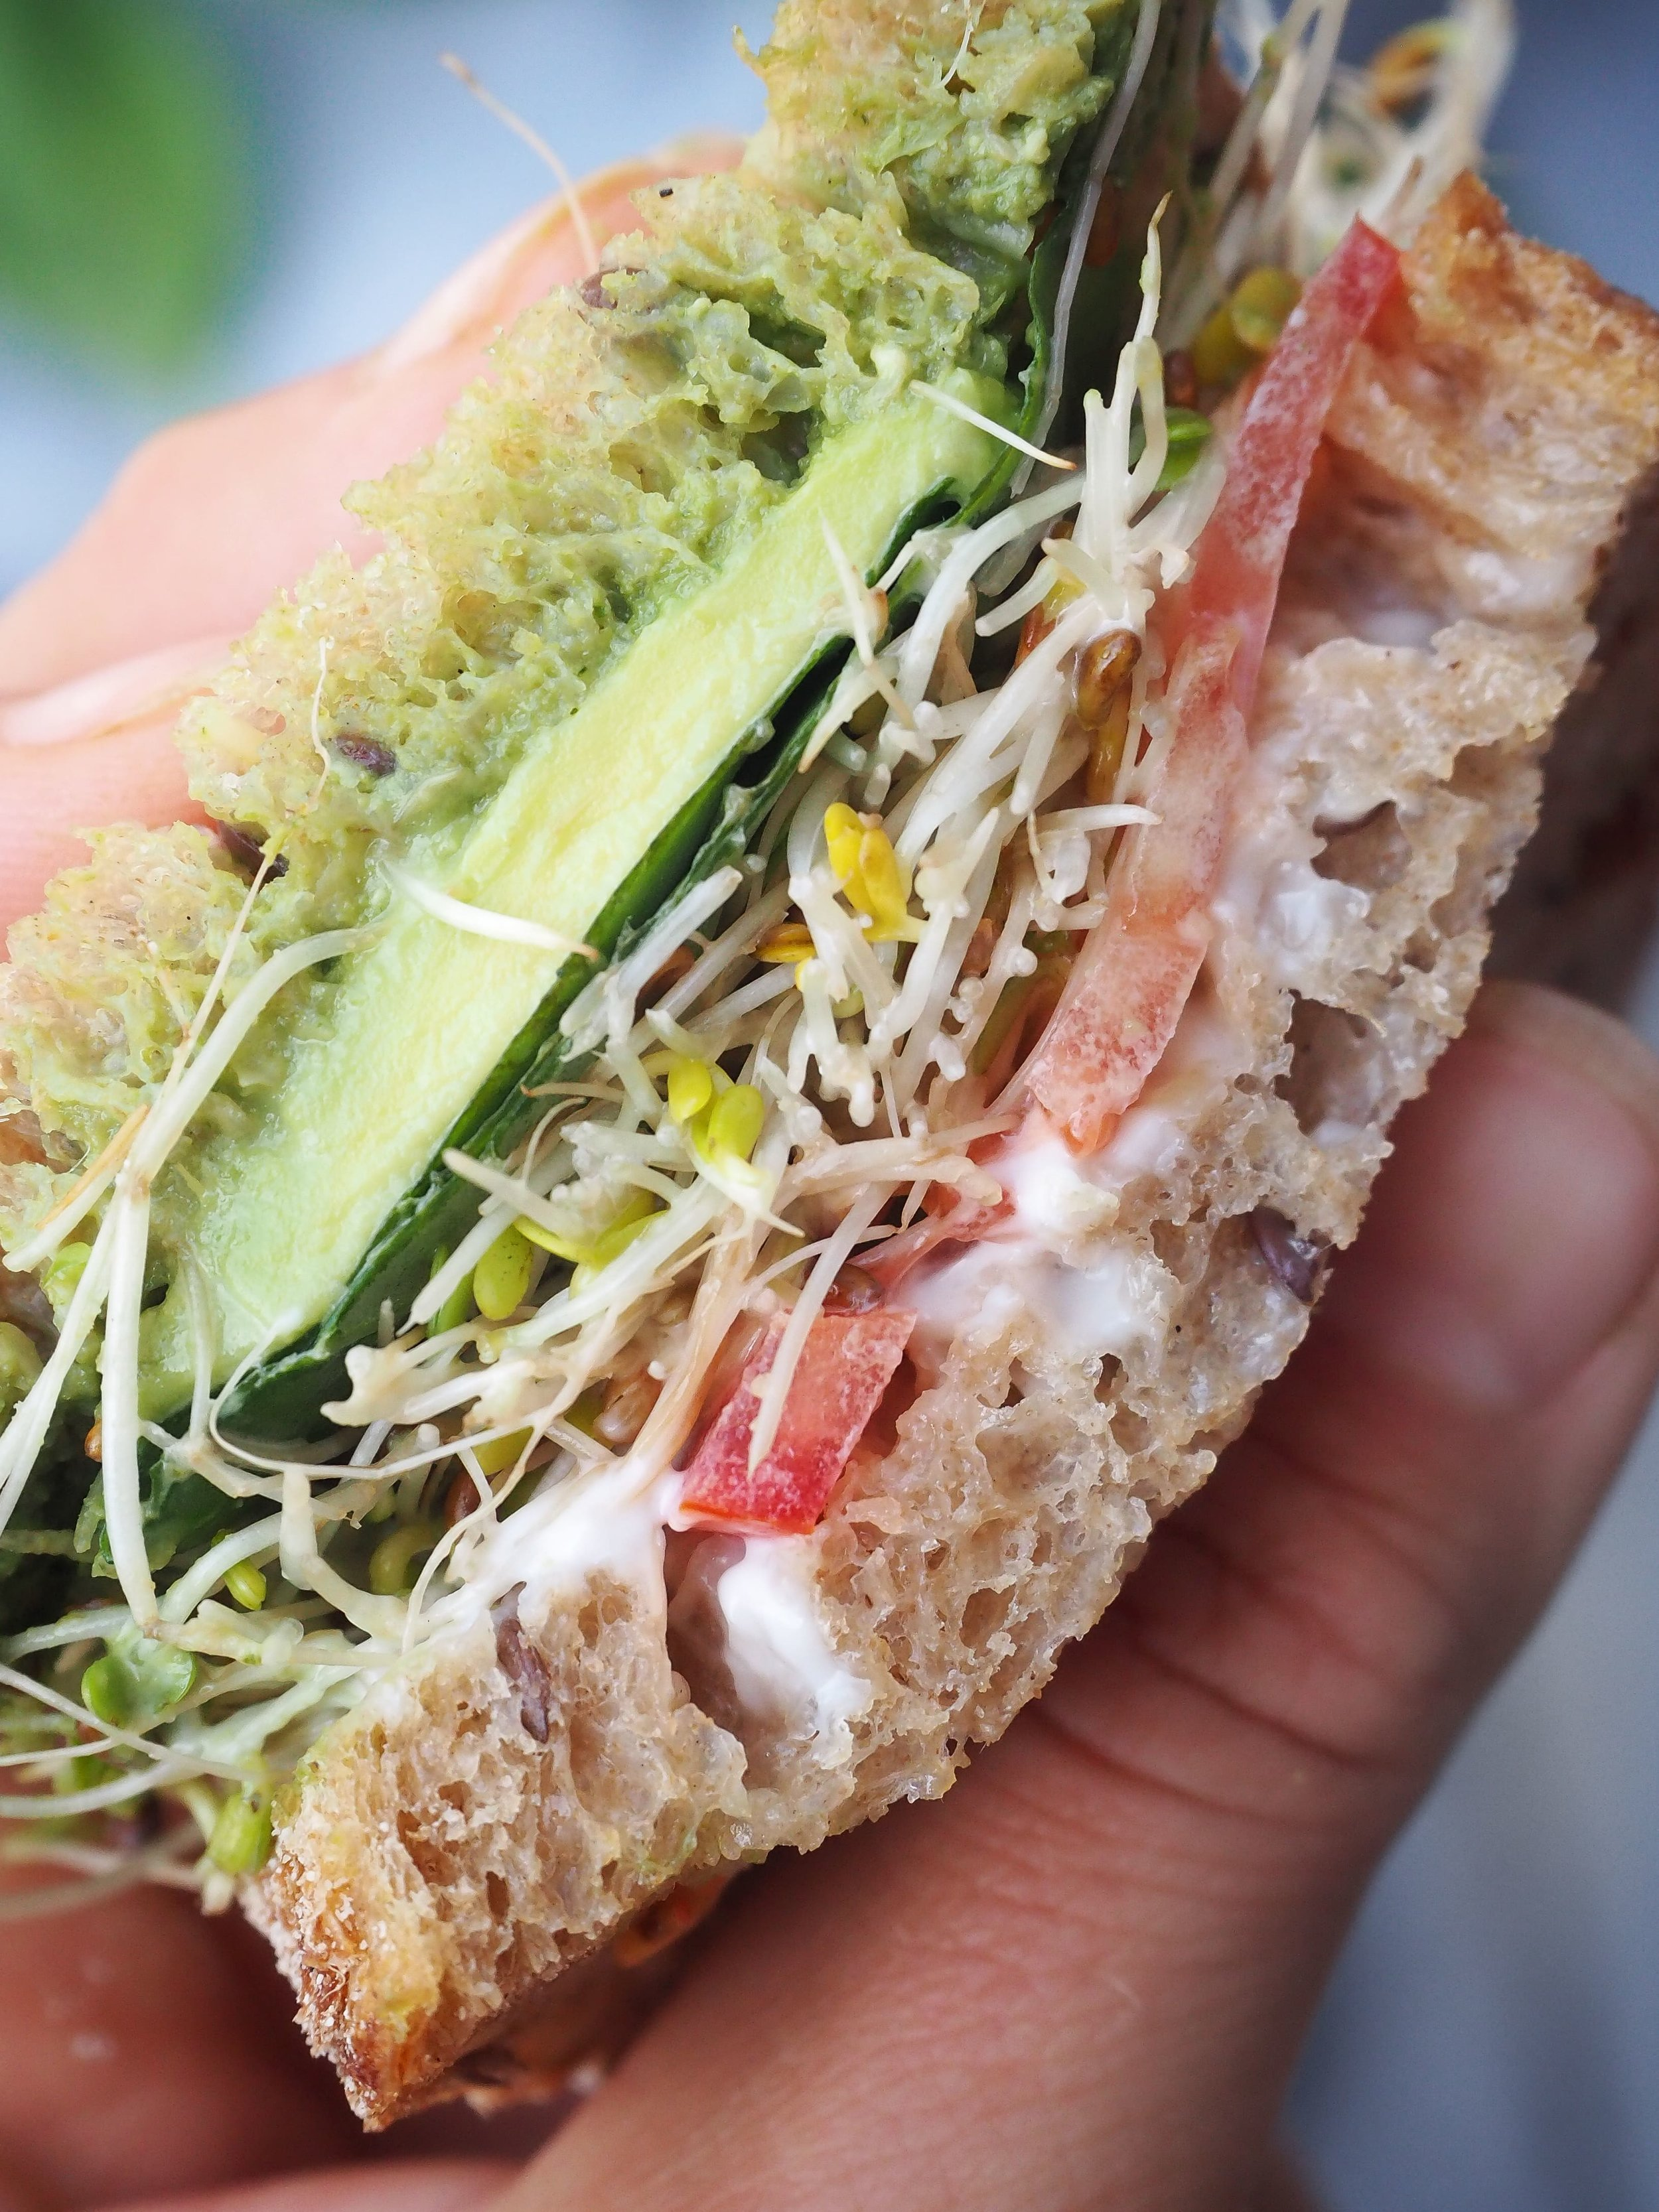 Vegan-Avocado-Pesto-Sandwich-3.jpg